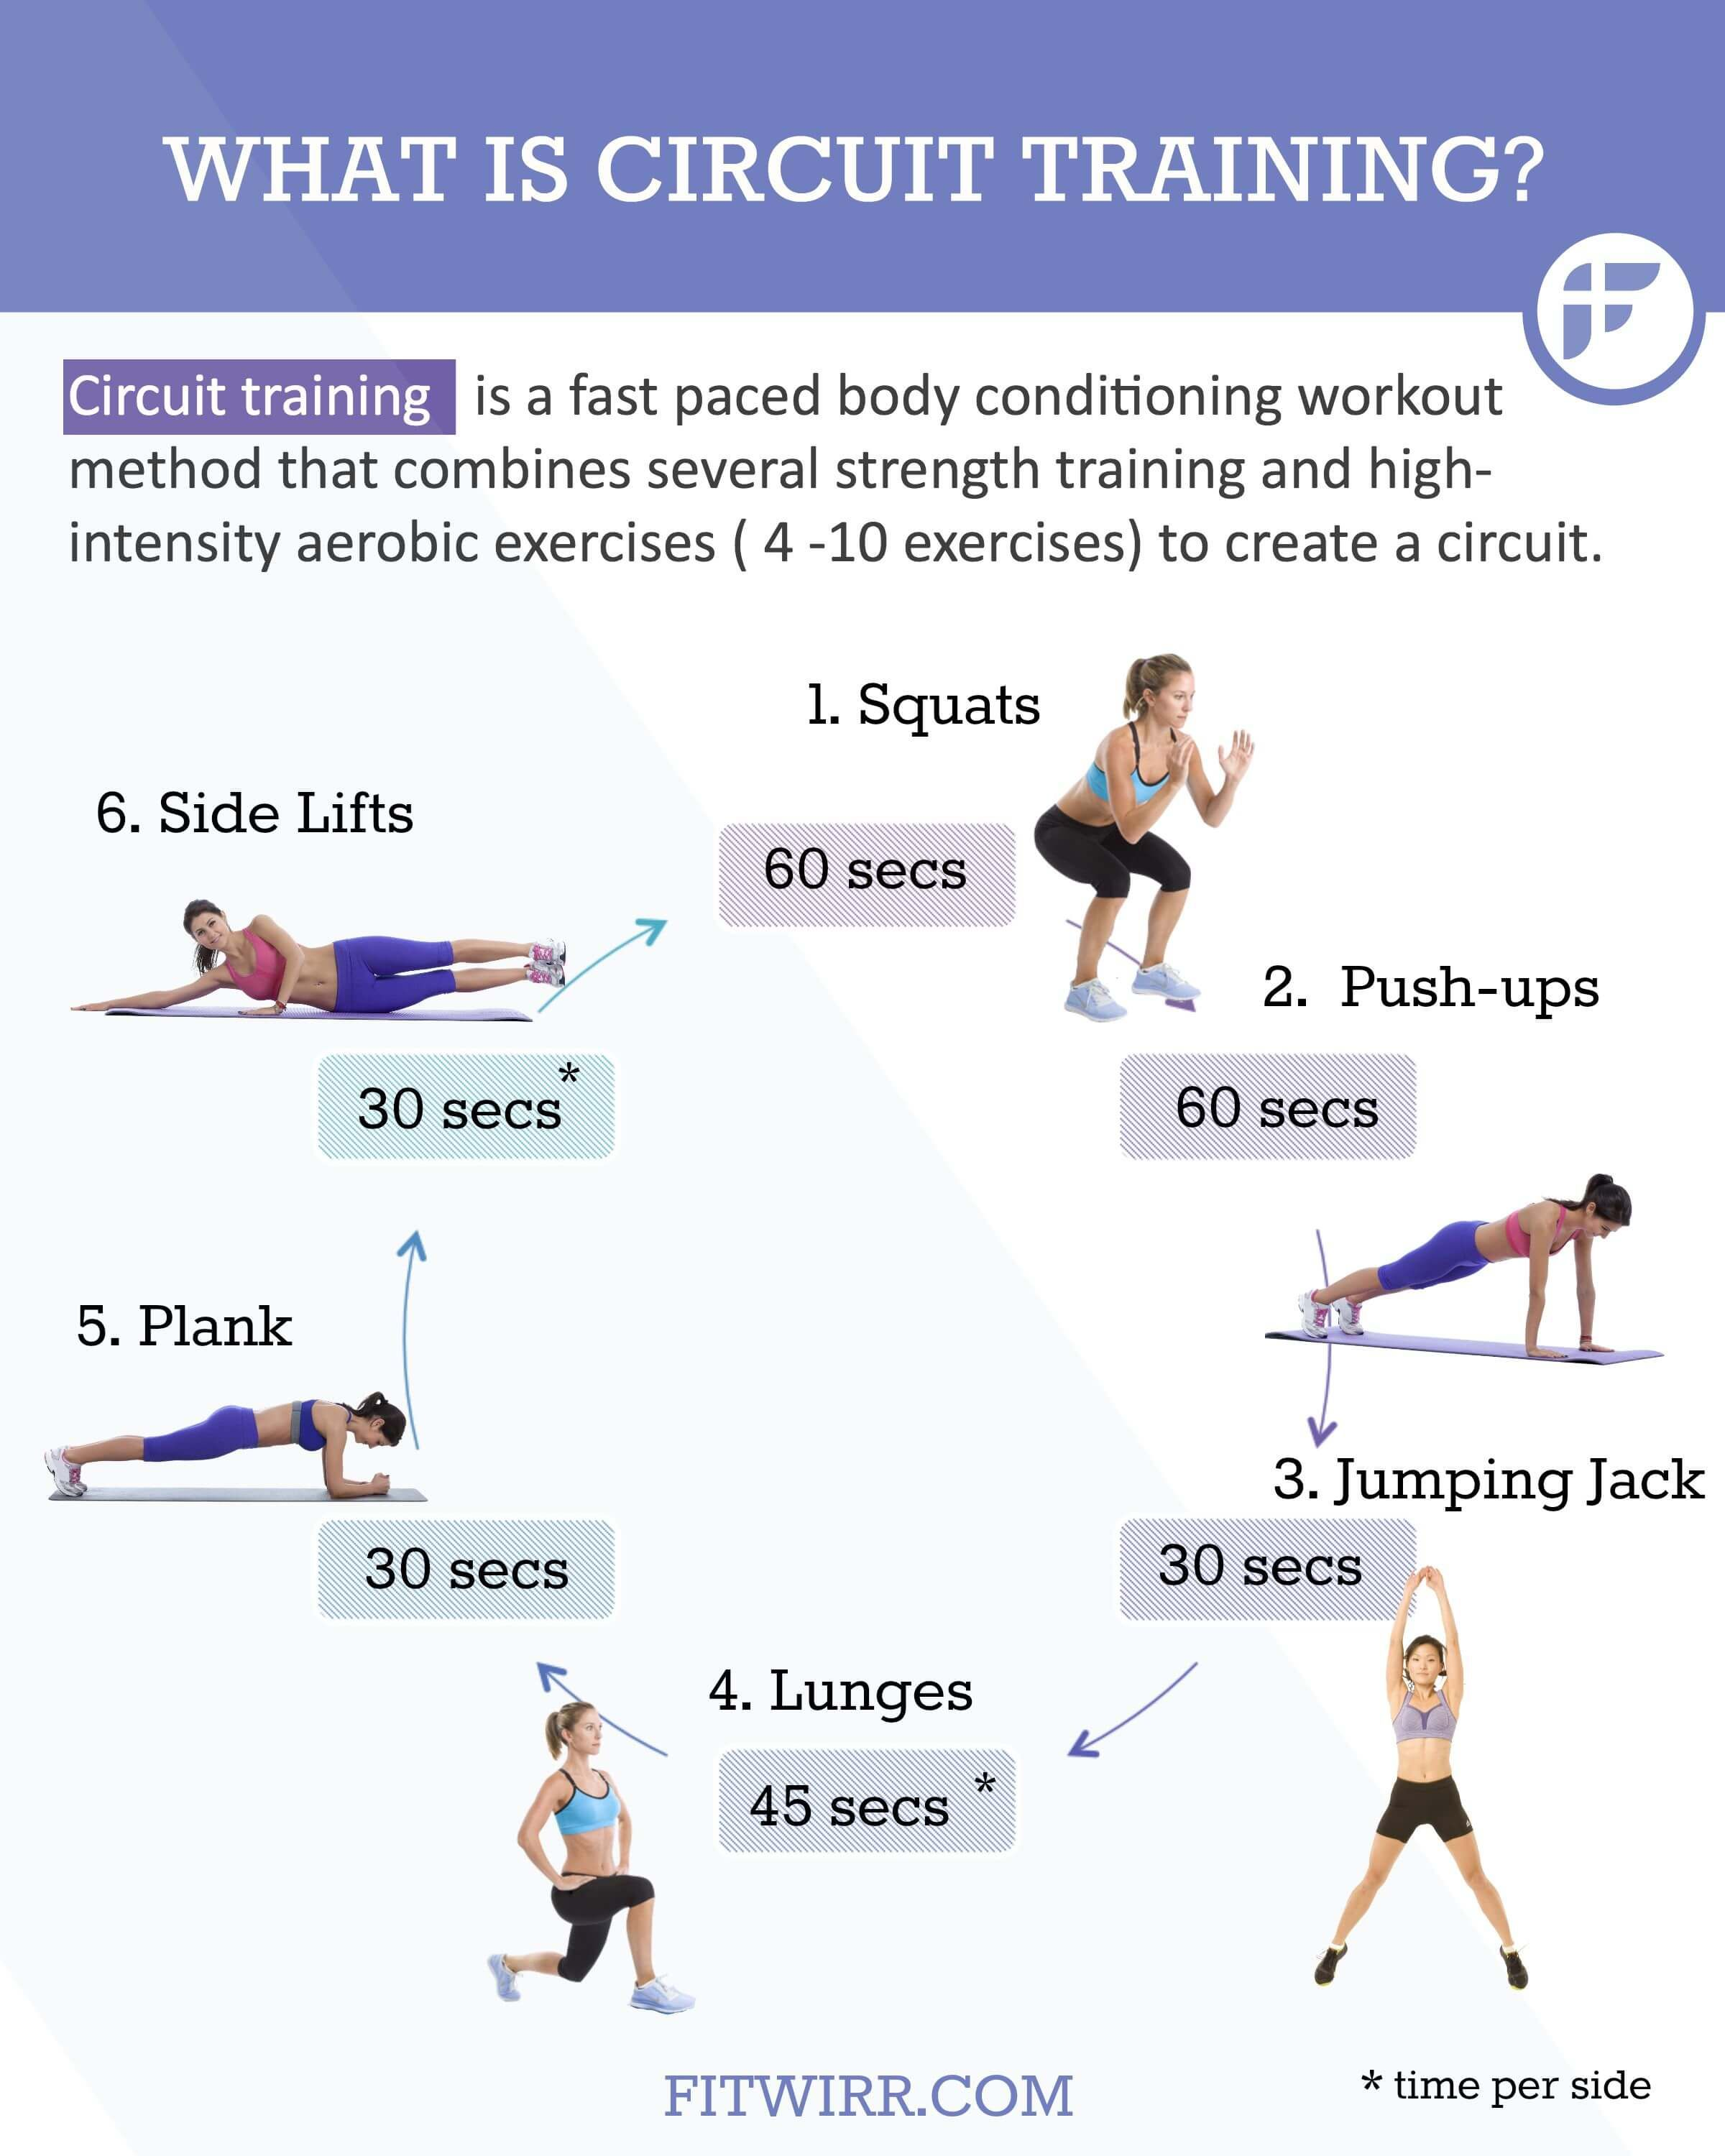 Exercise Fitness Tips: Types of Exercises, Workouts, Fitness Advice, Tips and Training